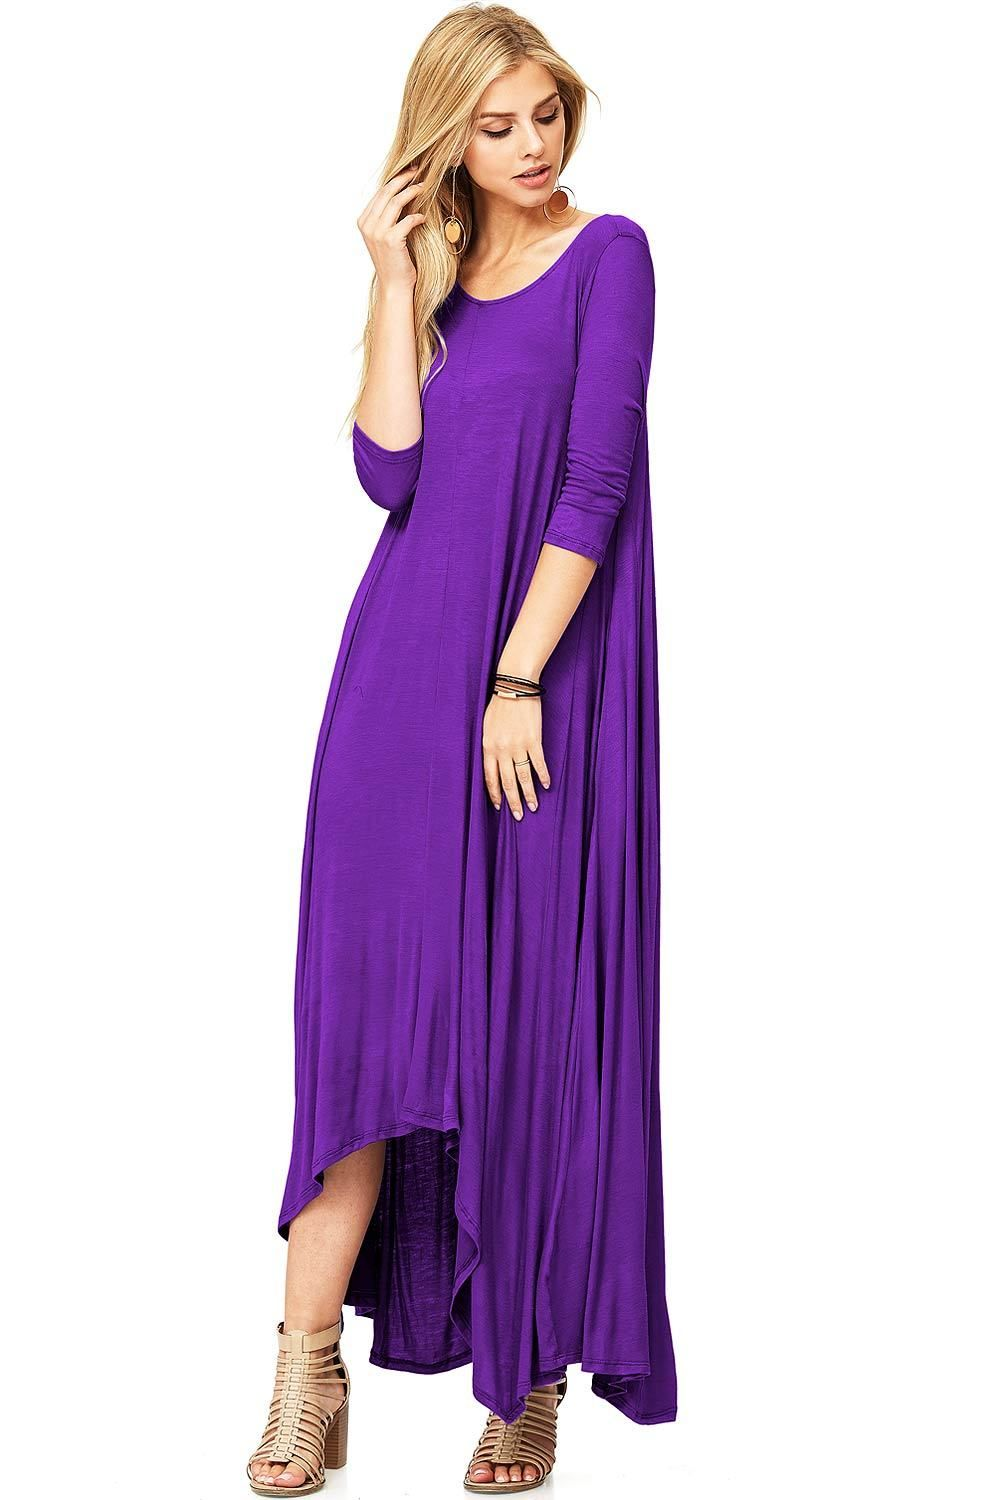 Revolving hype maxi dress maxi dresses and products